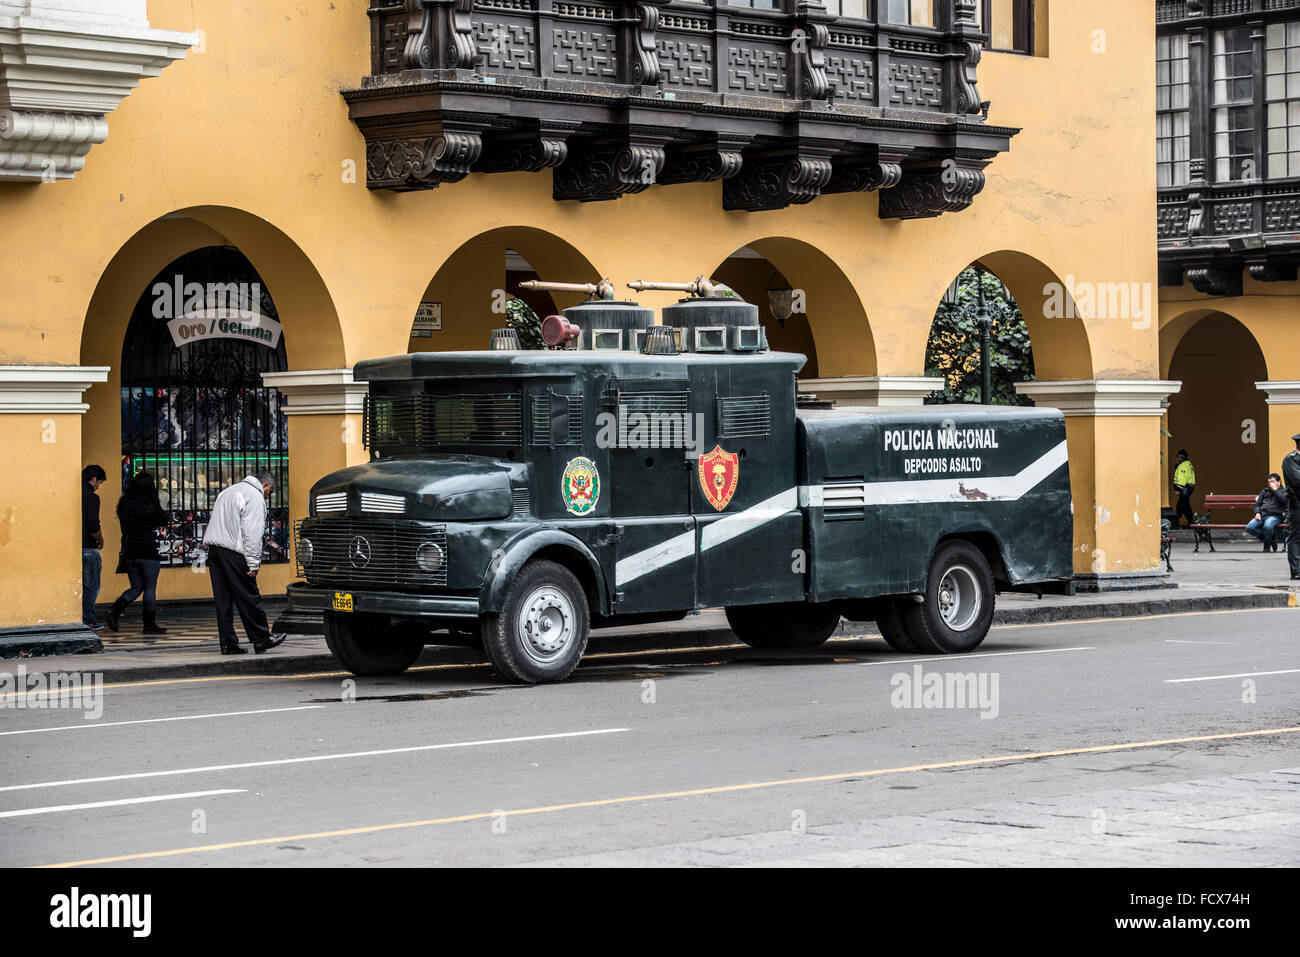 Police water cannon in Lima, Peru - Stock Image